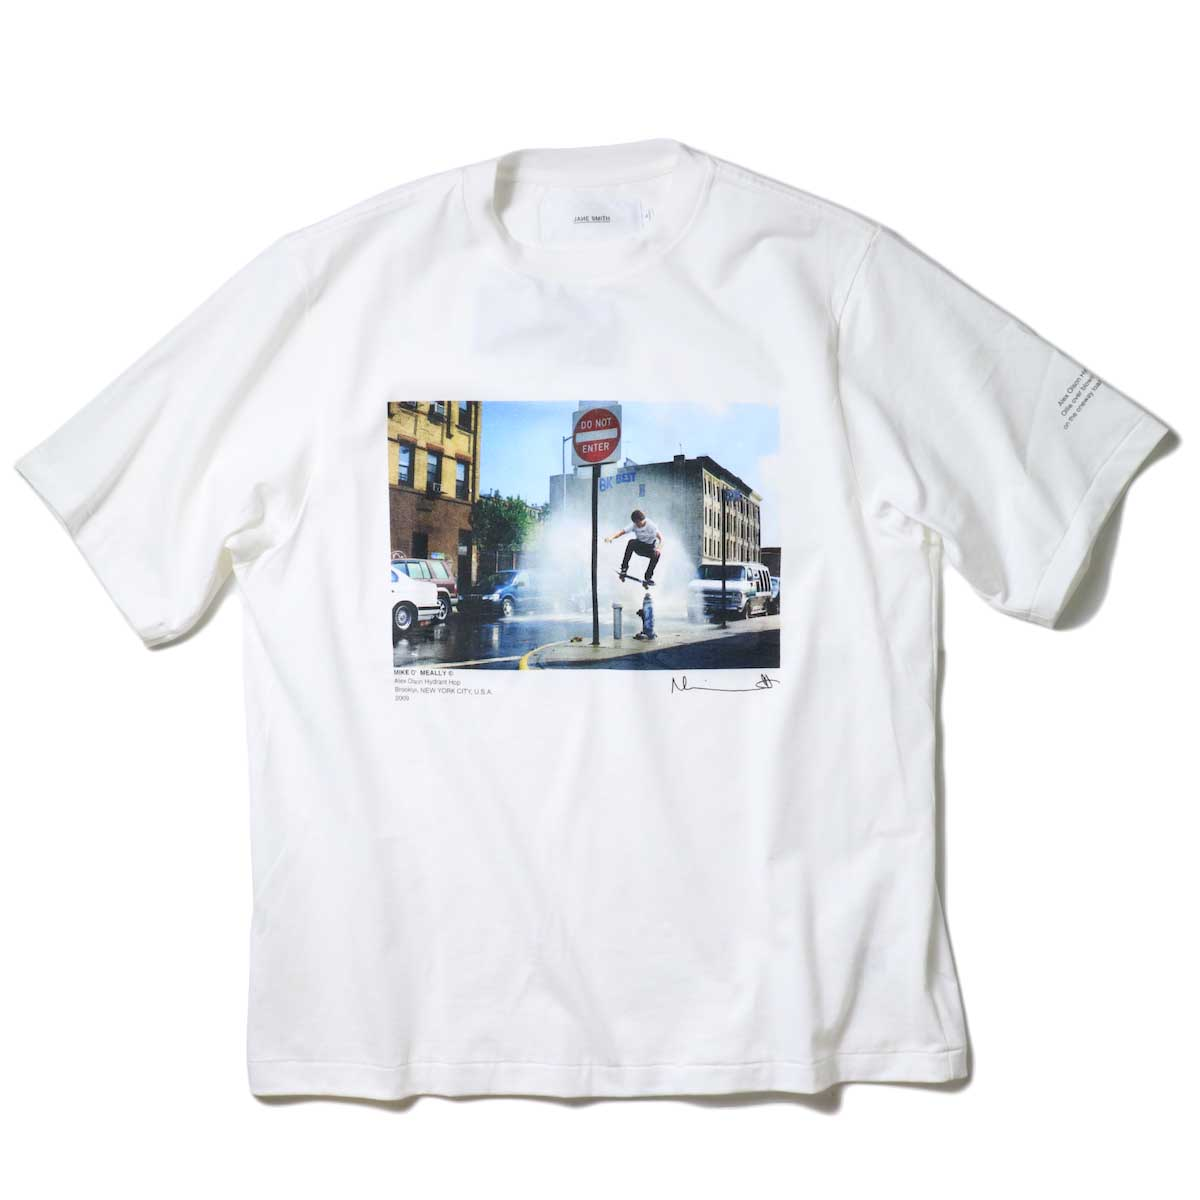 JANE SMITH / HYDRANT HOP S/S T-SHIRT